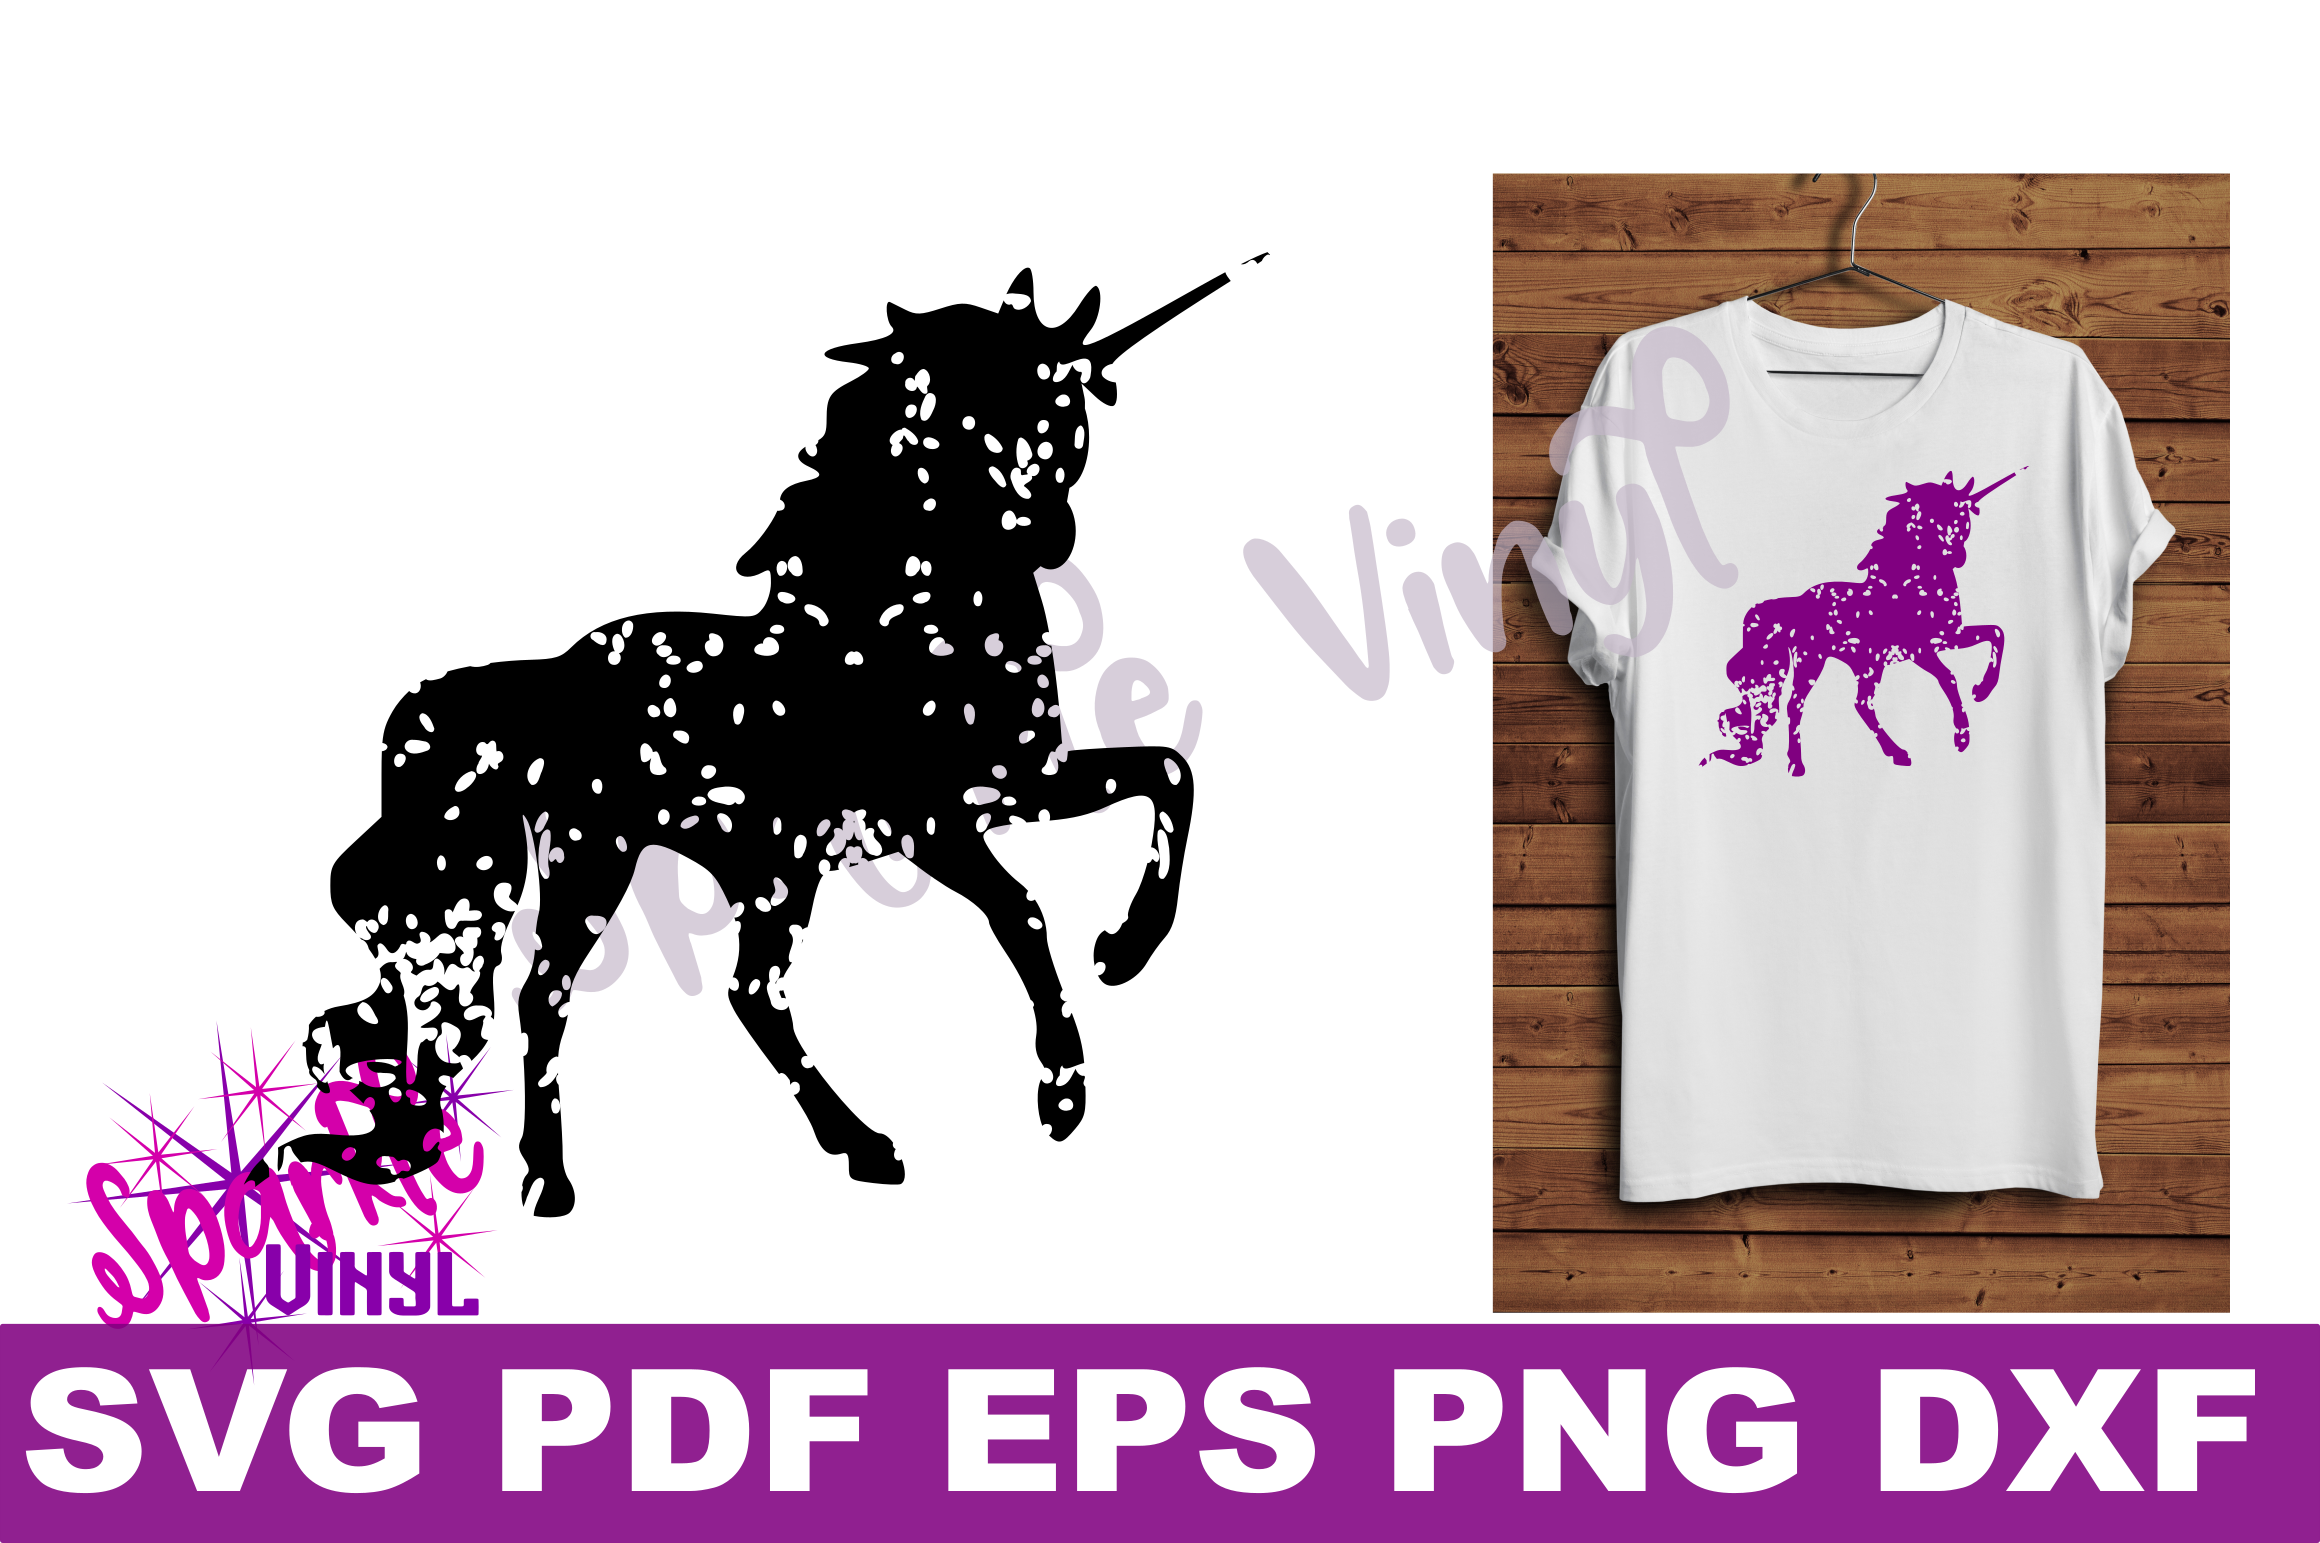 Svg Distressed Grunge Unicorn silhouette svg design files for cricut or silhouette, Vintage look unicorn  example image 2